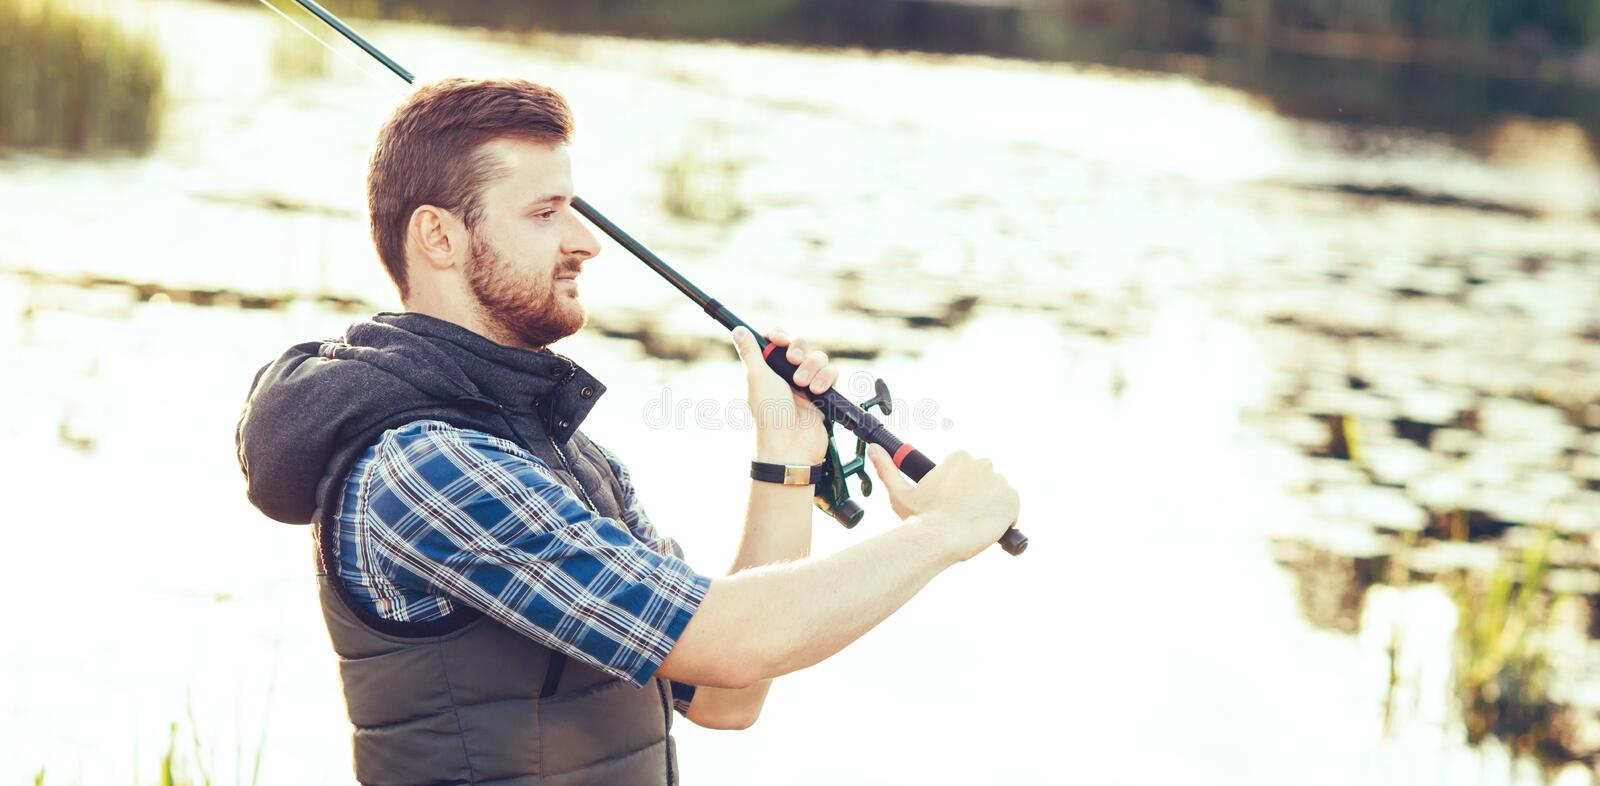 Fisherman with a spinning and bait catching fish on a lake or river. Man on a weekend with a fishing road. Hobby and royalty free stock photography